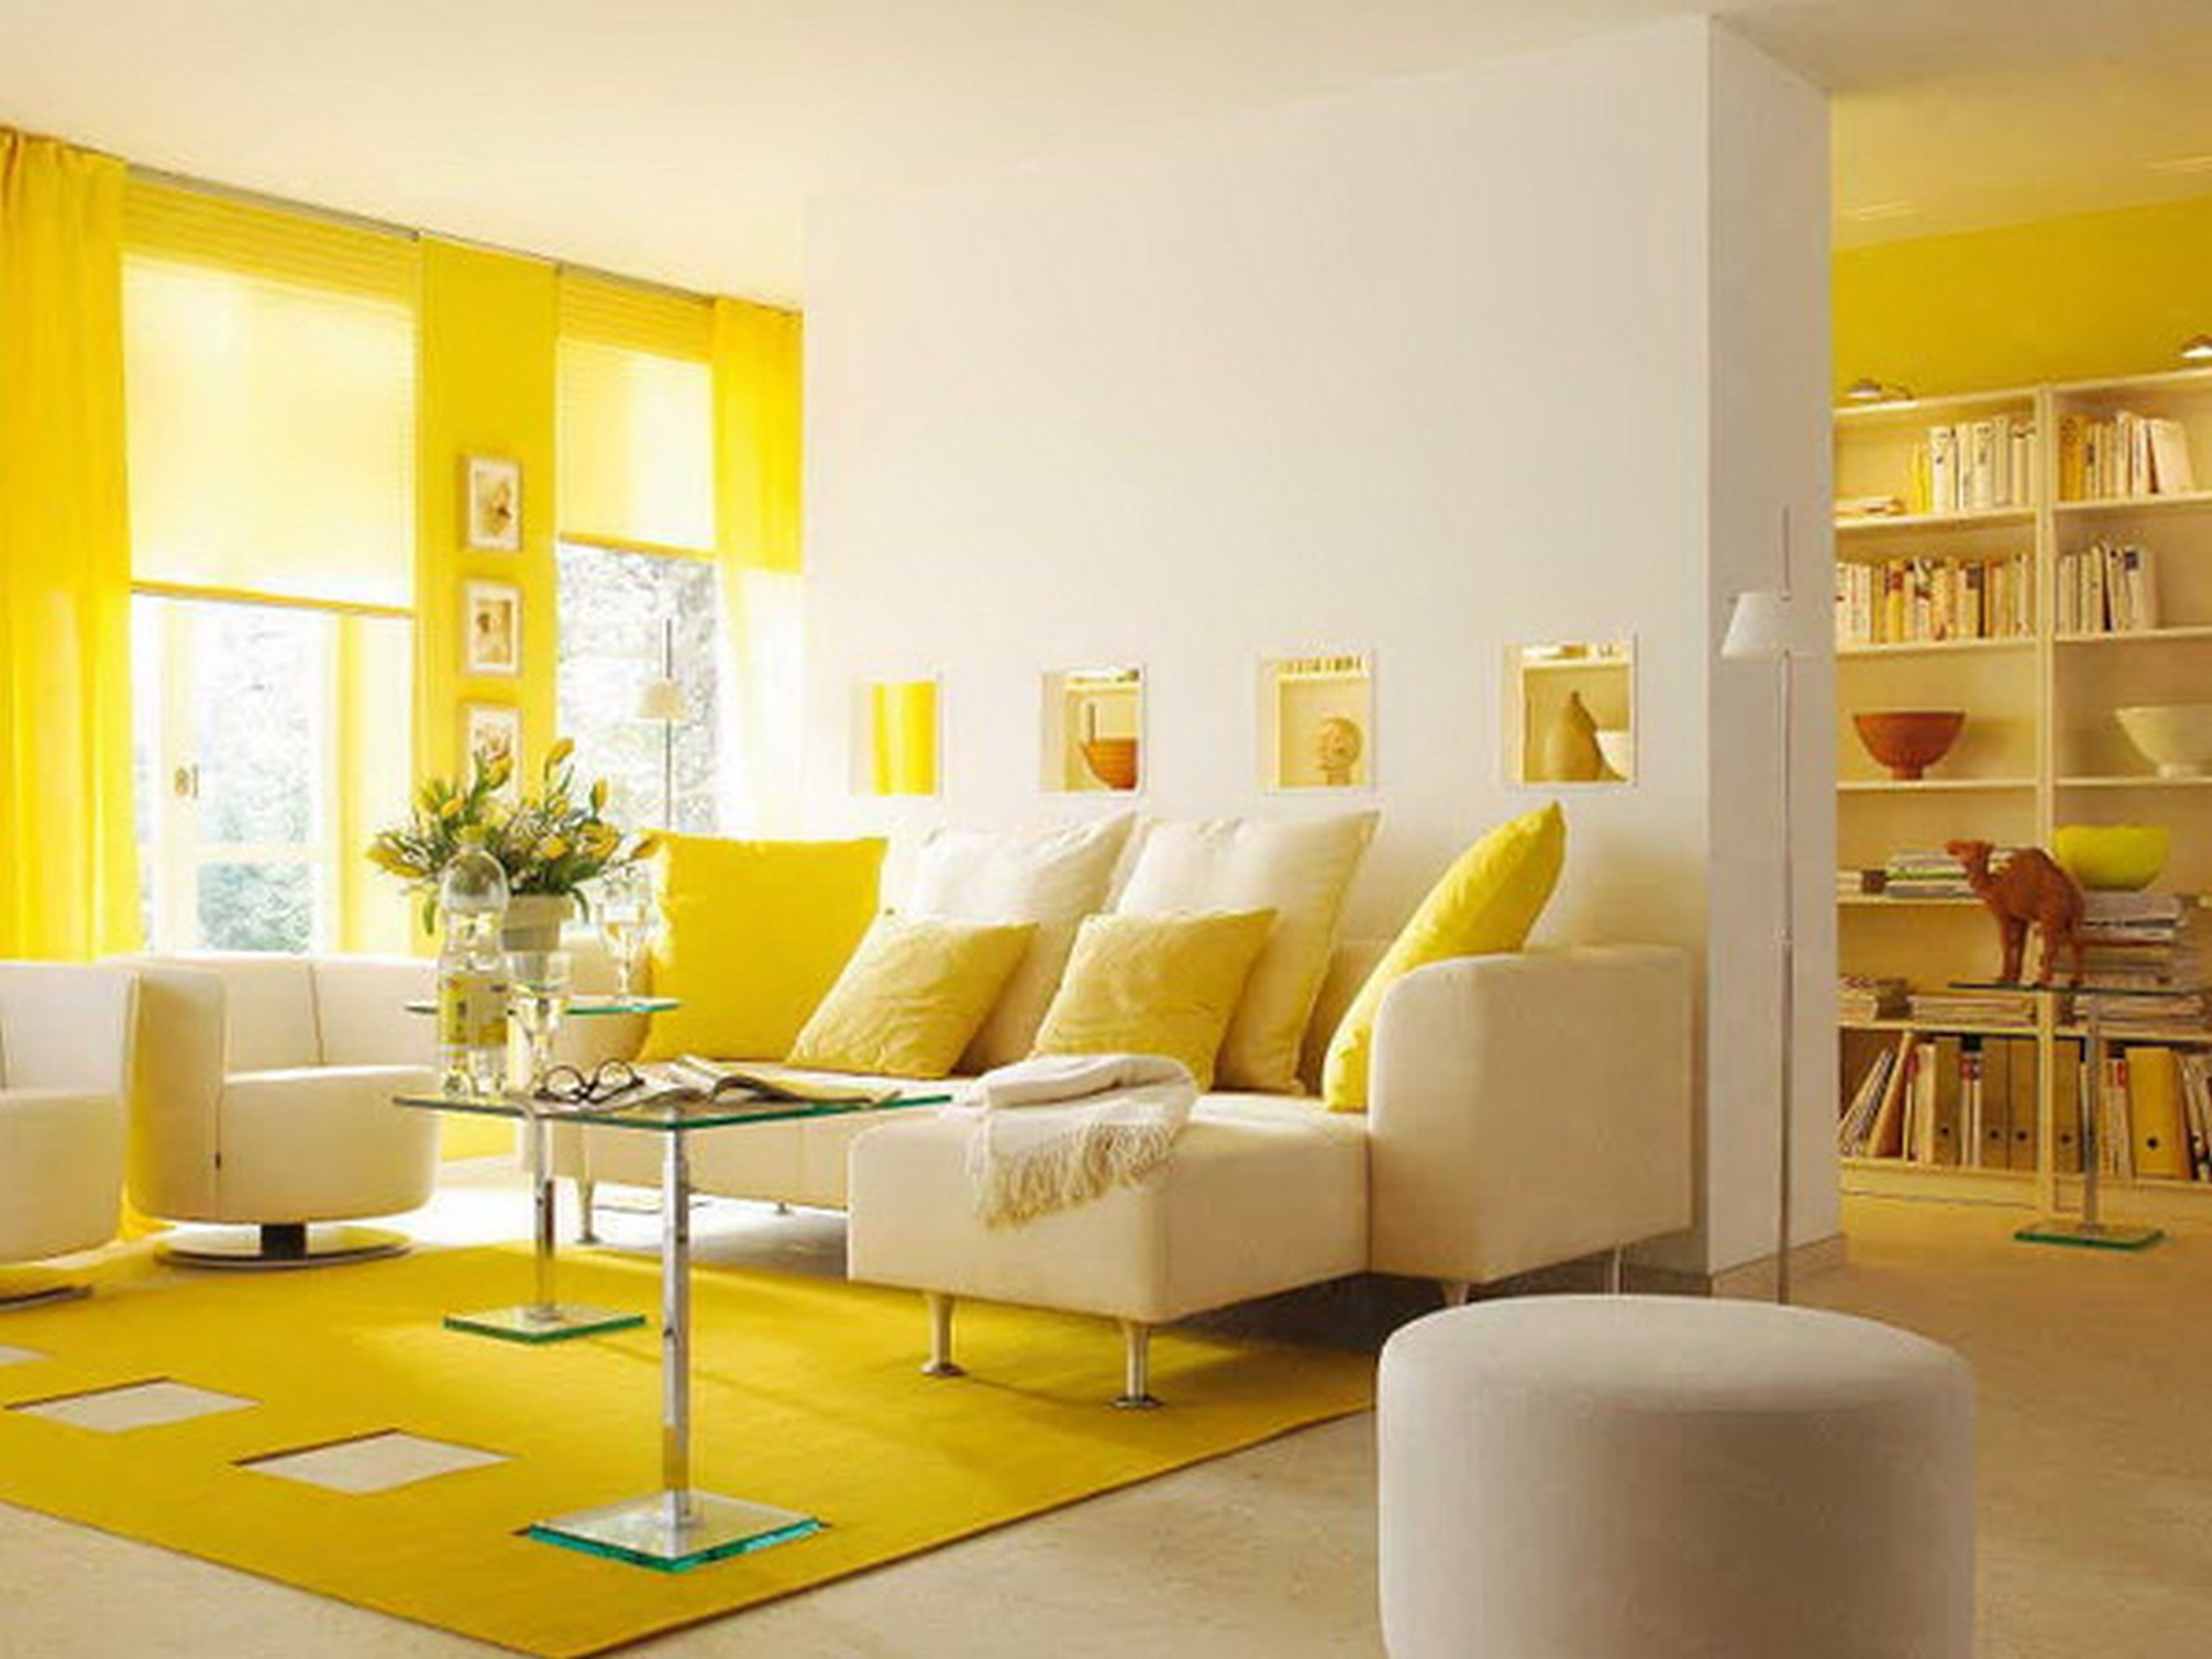 Perfect Yellow Interior Design Ideas With Stunning Yellow Living Room Interior Decoration And Painting Idea For Interior Design Home